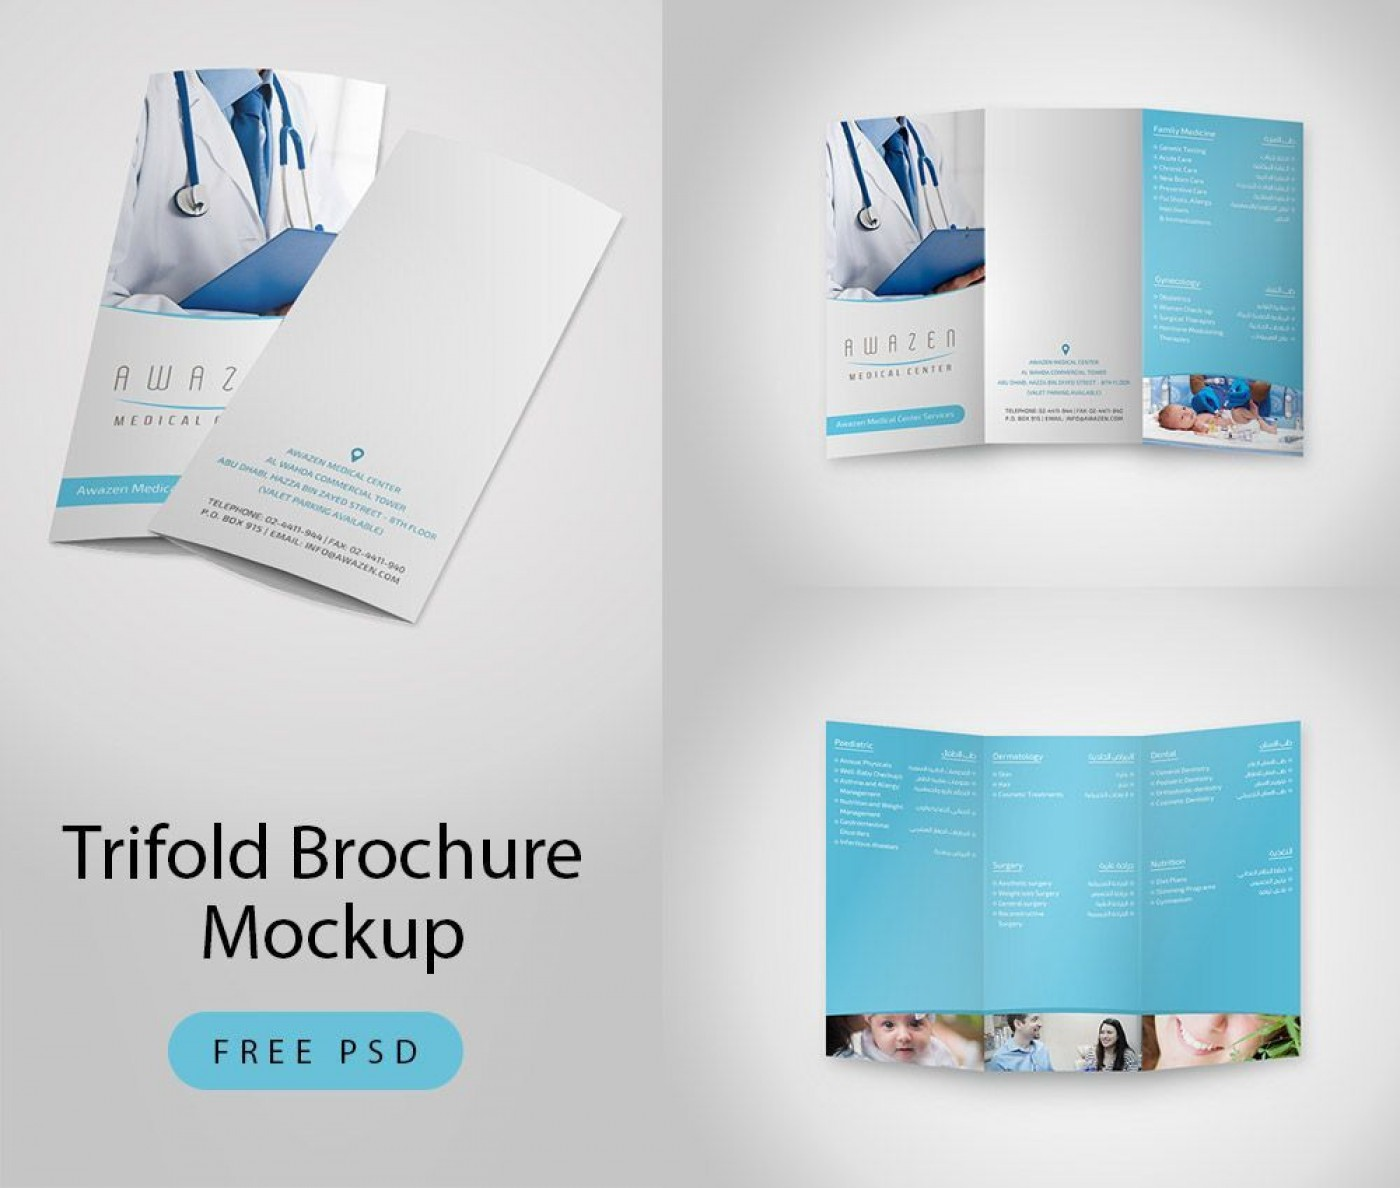 002 Awesome Brochure Template Photoshop Cs6 Free Download Concept 1400